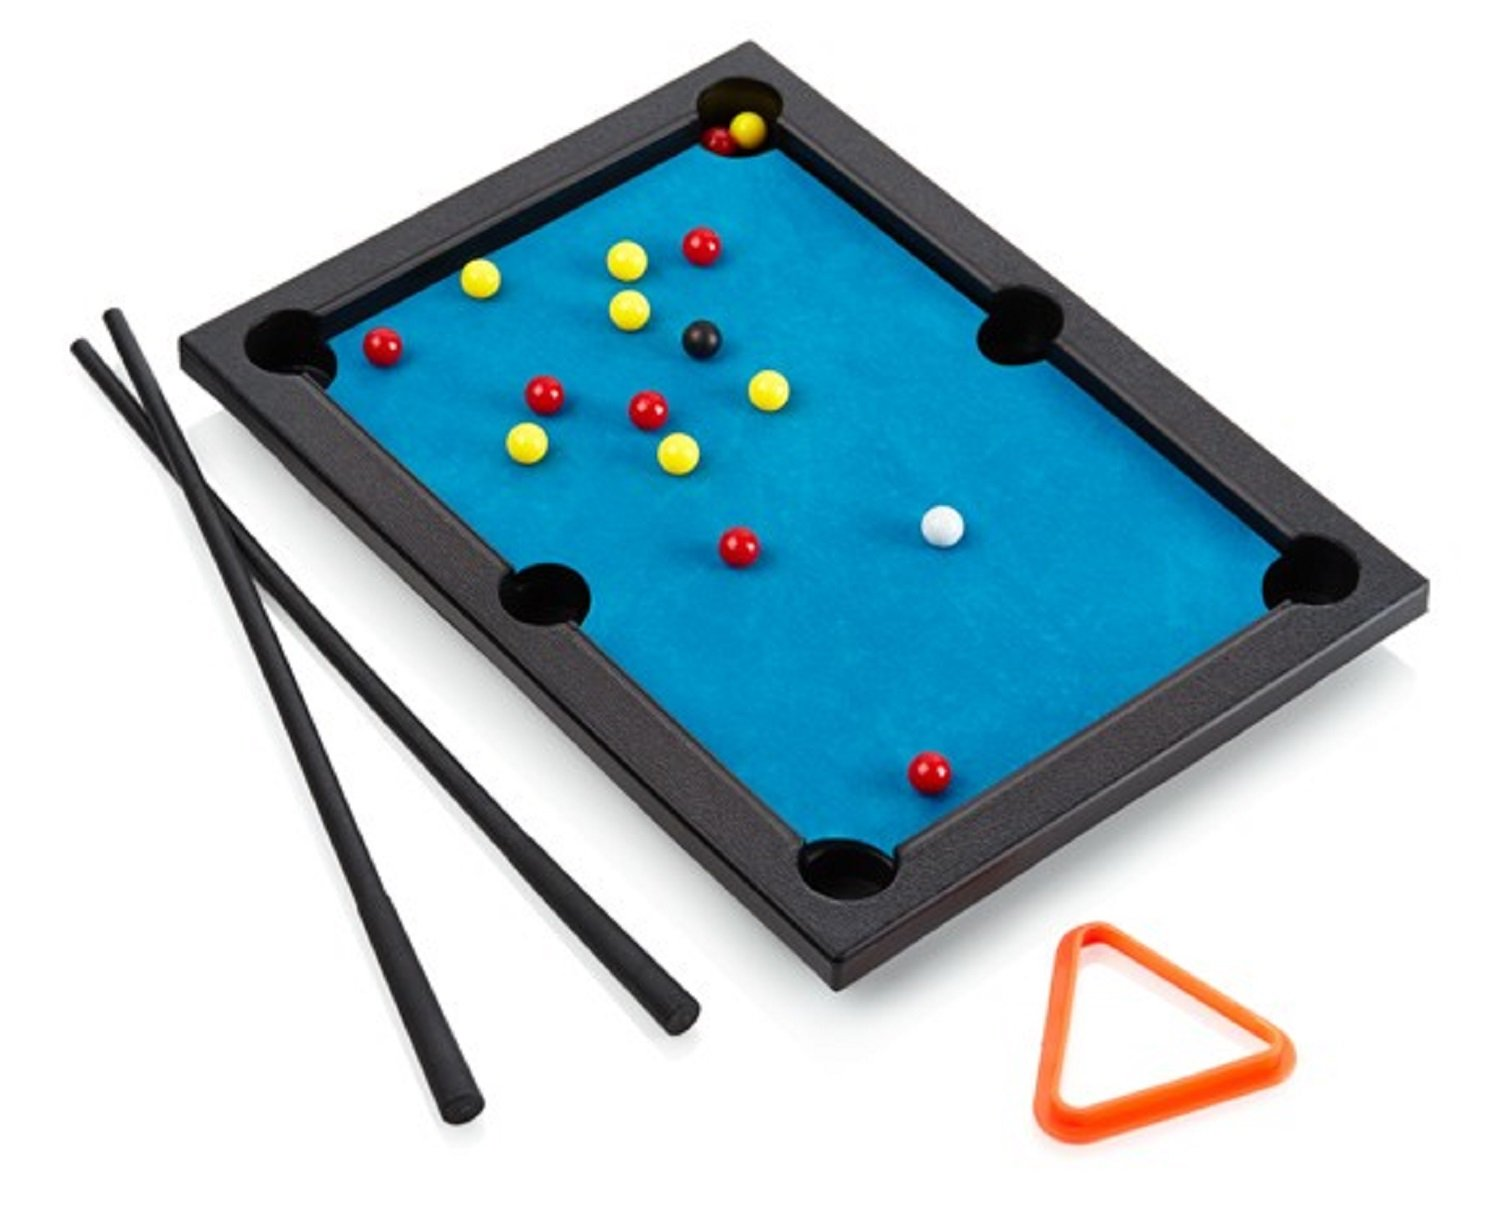 Desktop Mini Pool Table by NPW